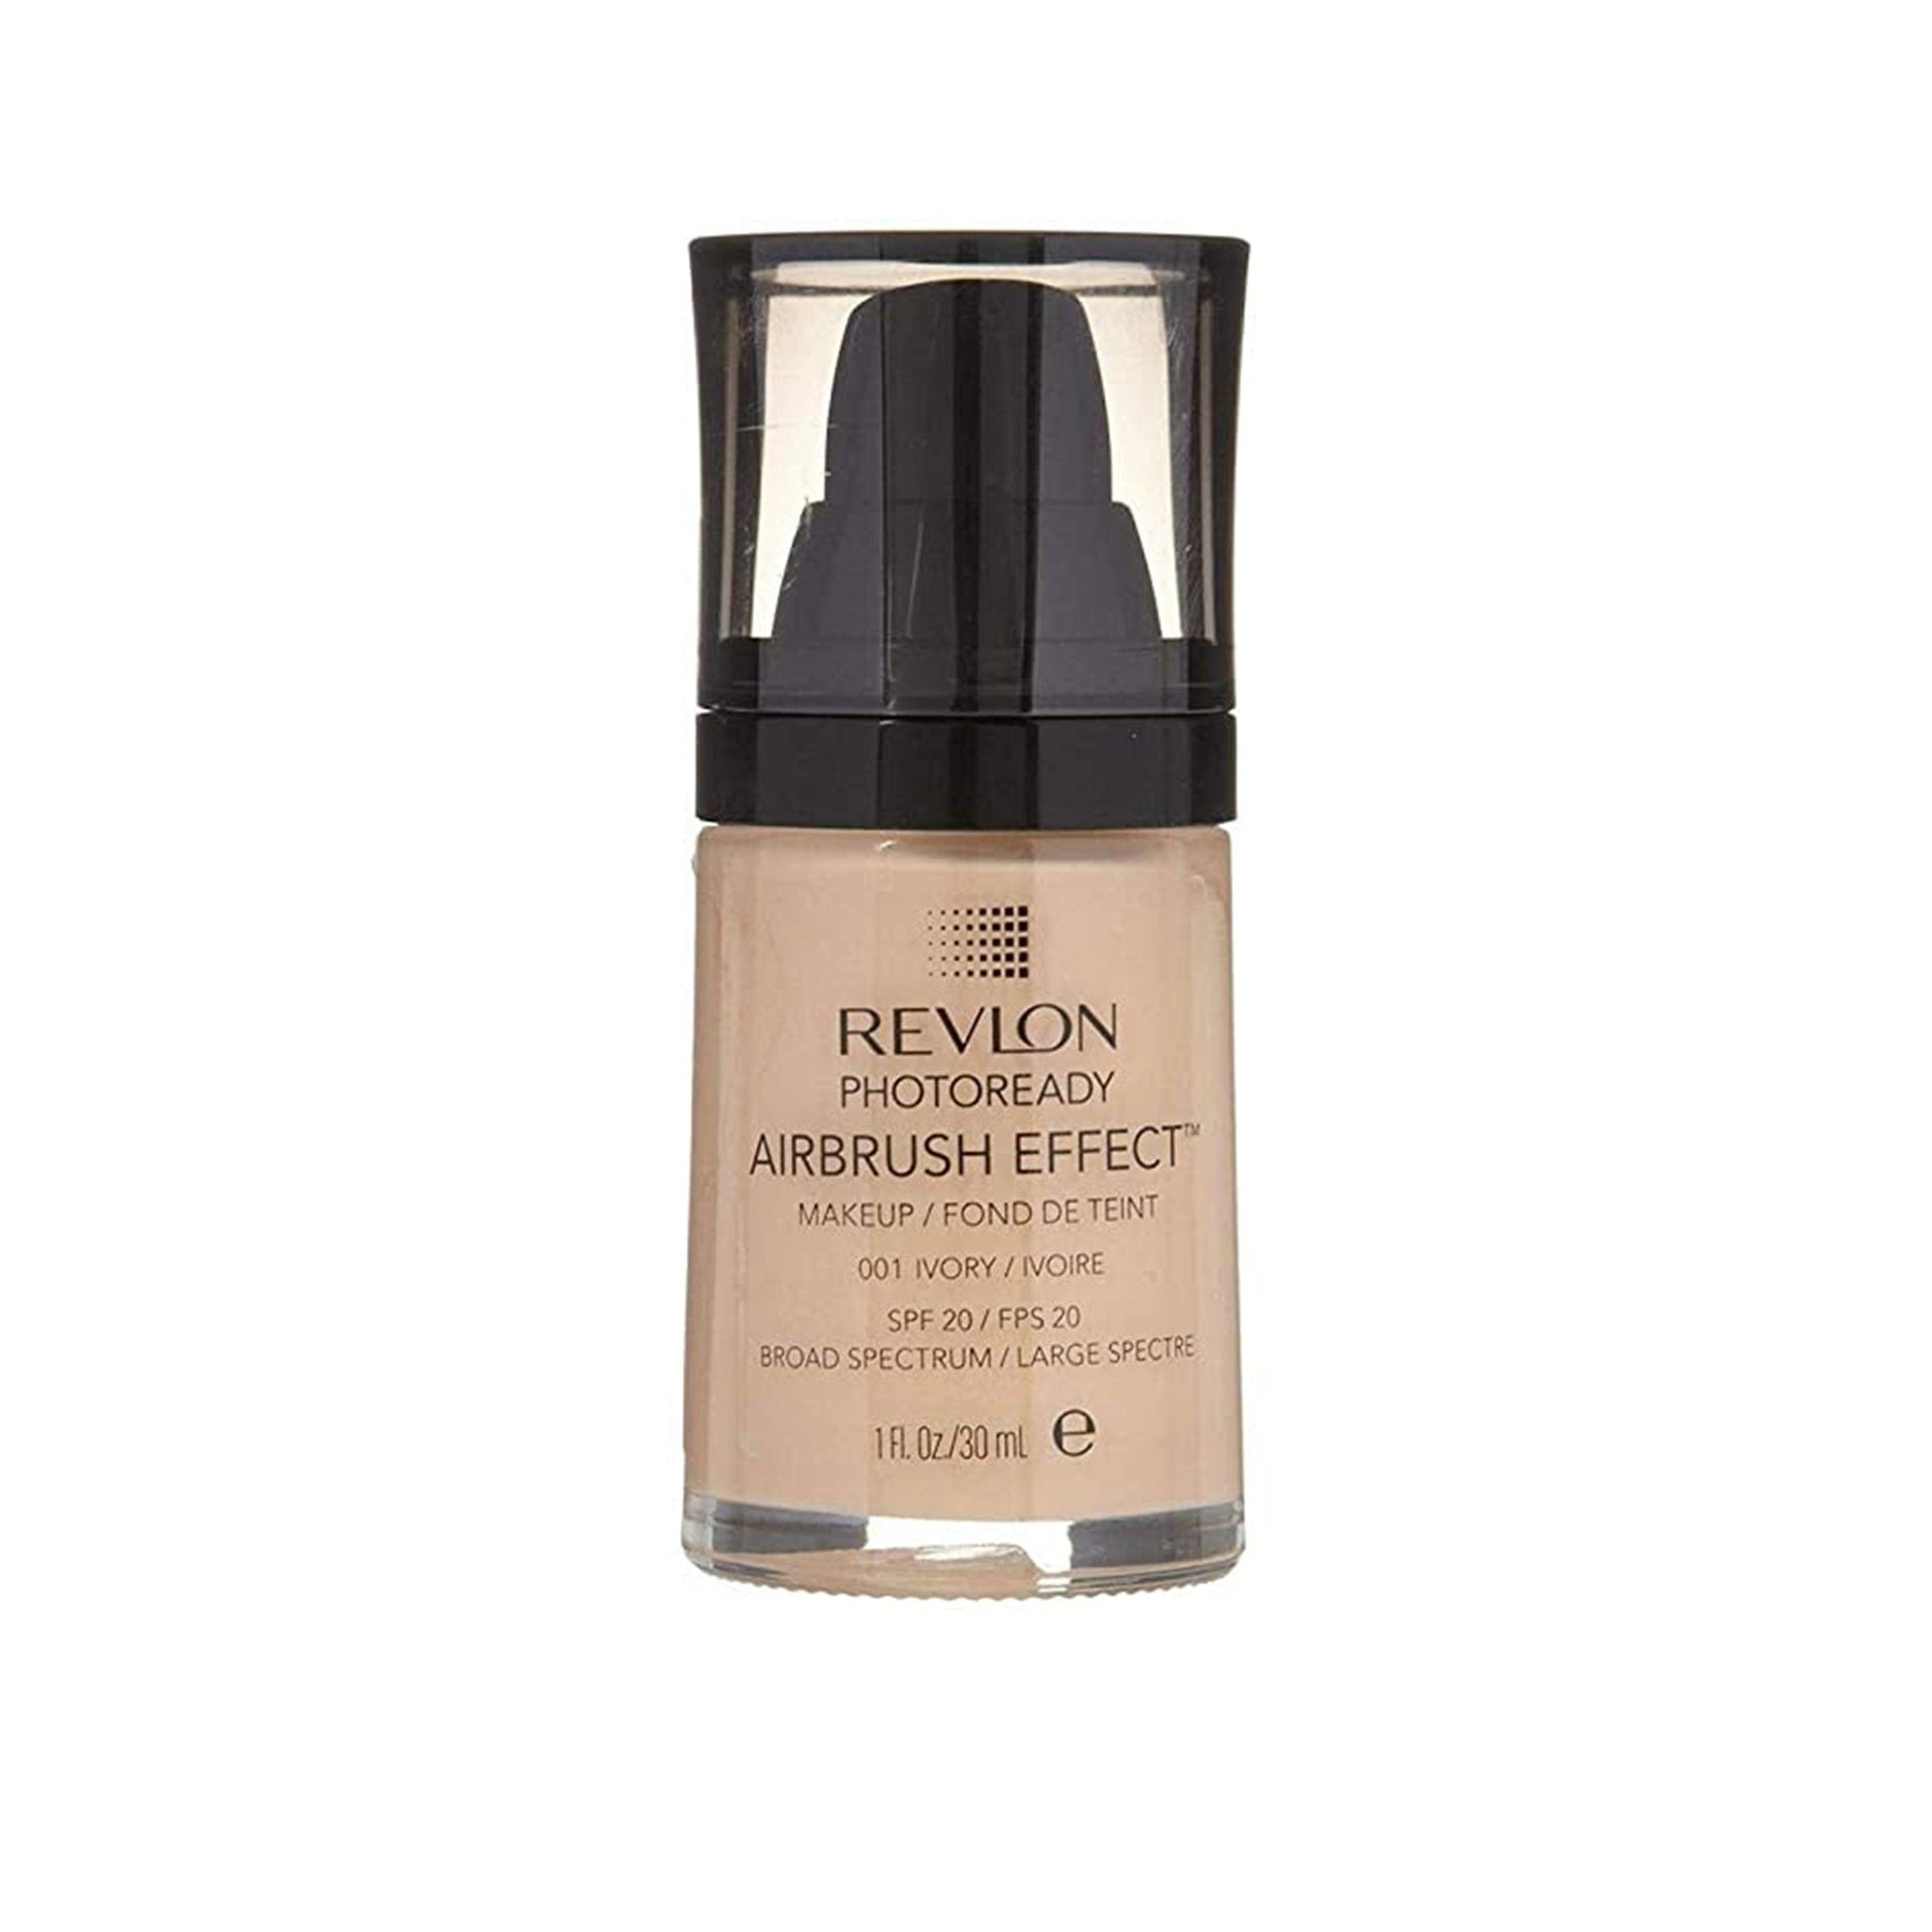 PhotoReady Airbrush Effect Makeup Foundation